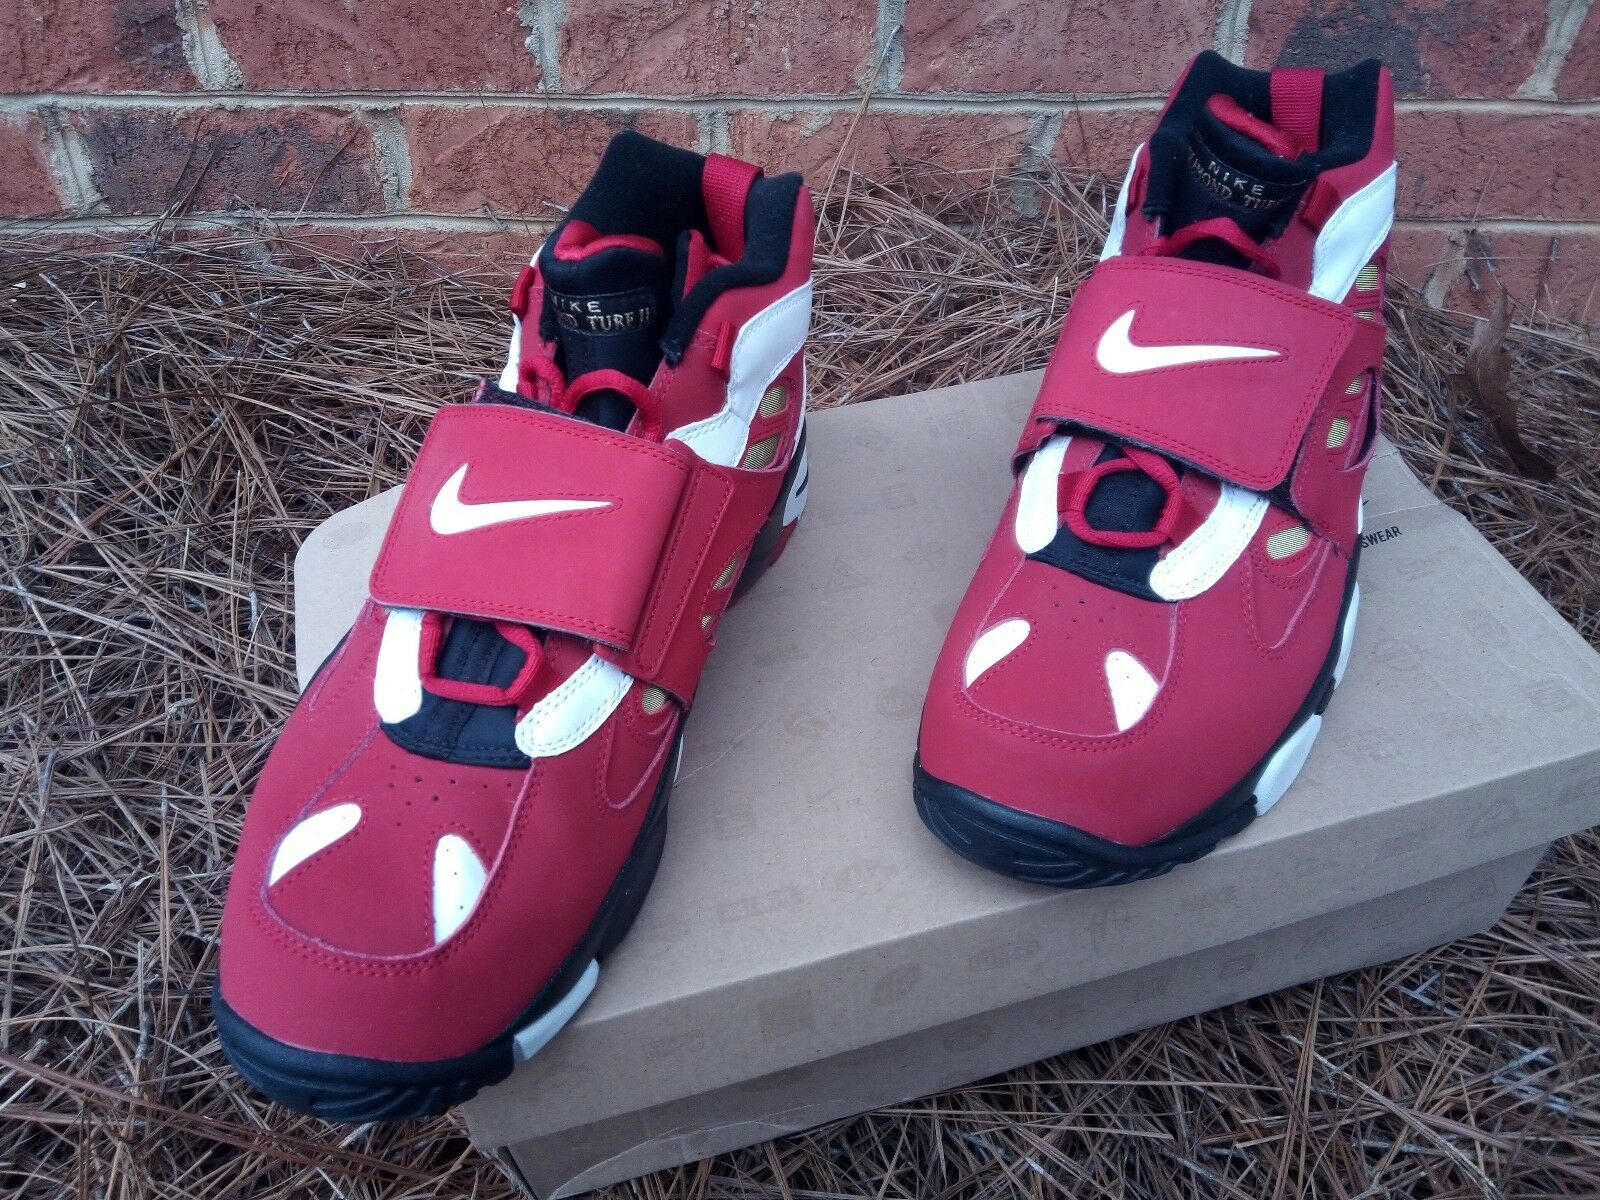 Nike Air Diamond Turf 2 II size 11.5 487658 610 Deion Sanders Falcons 49ers Red